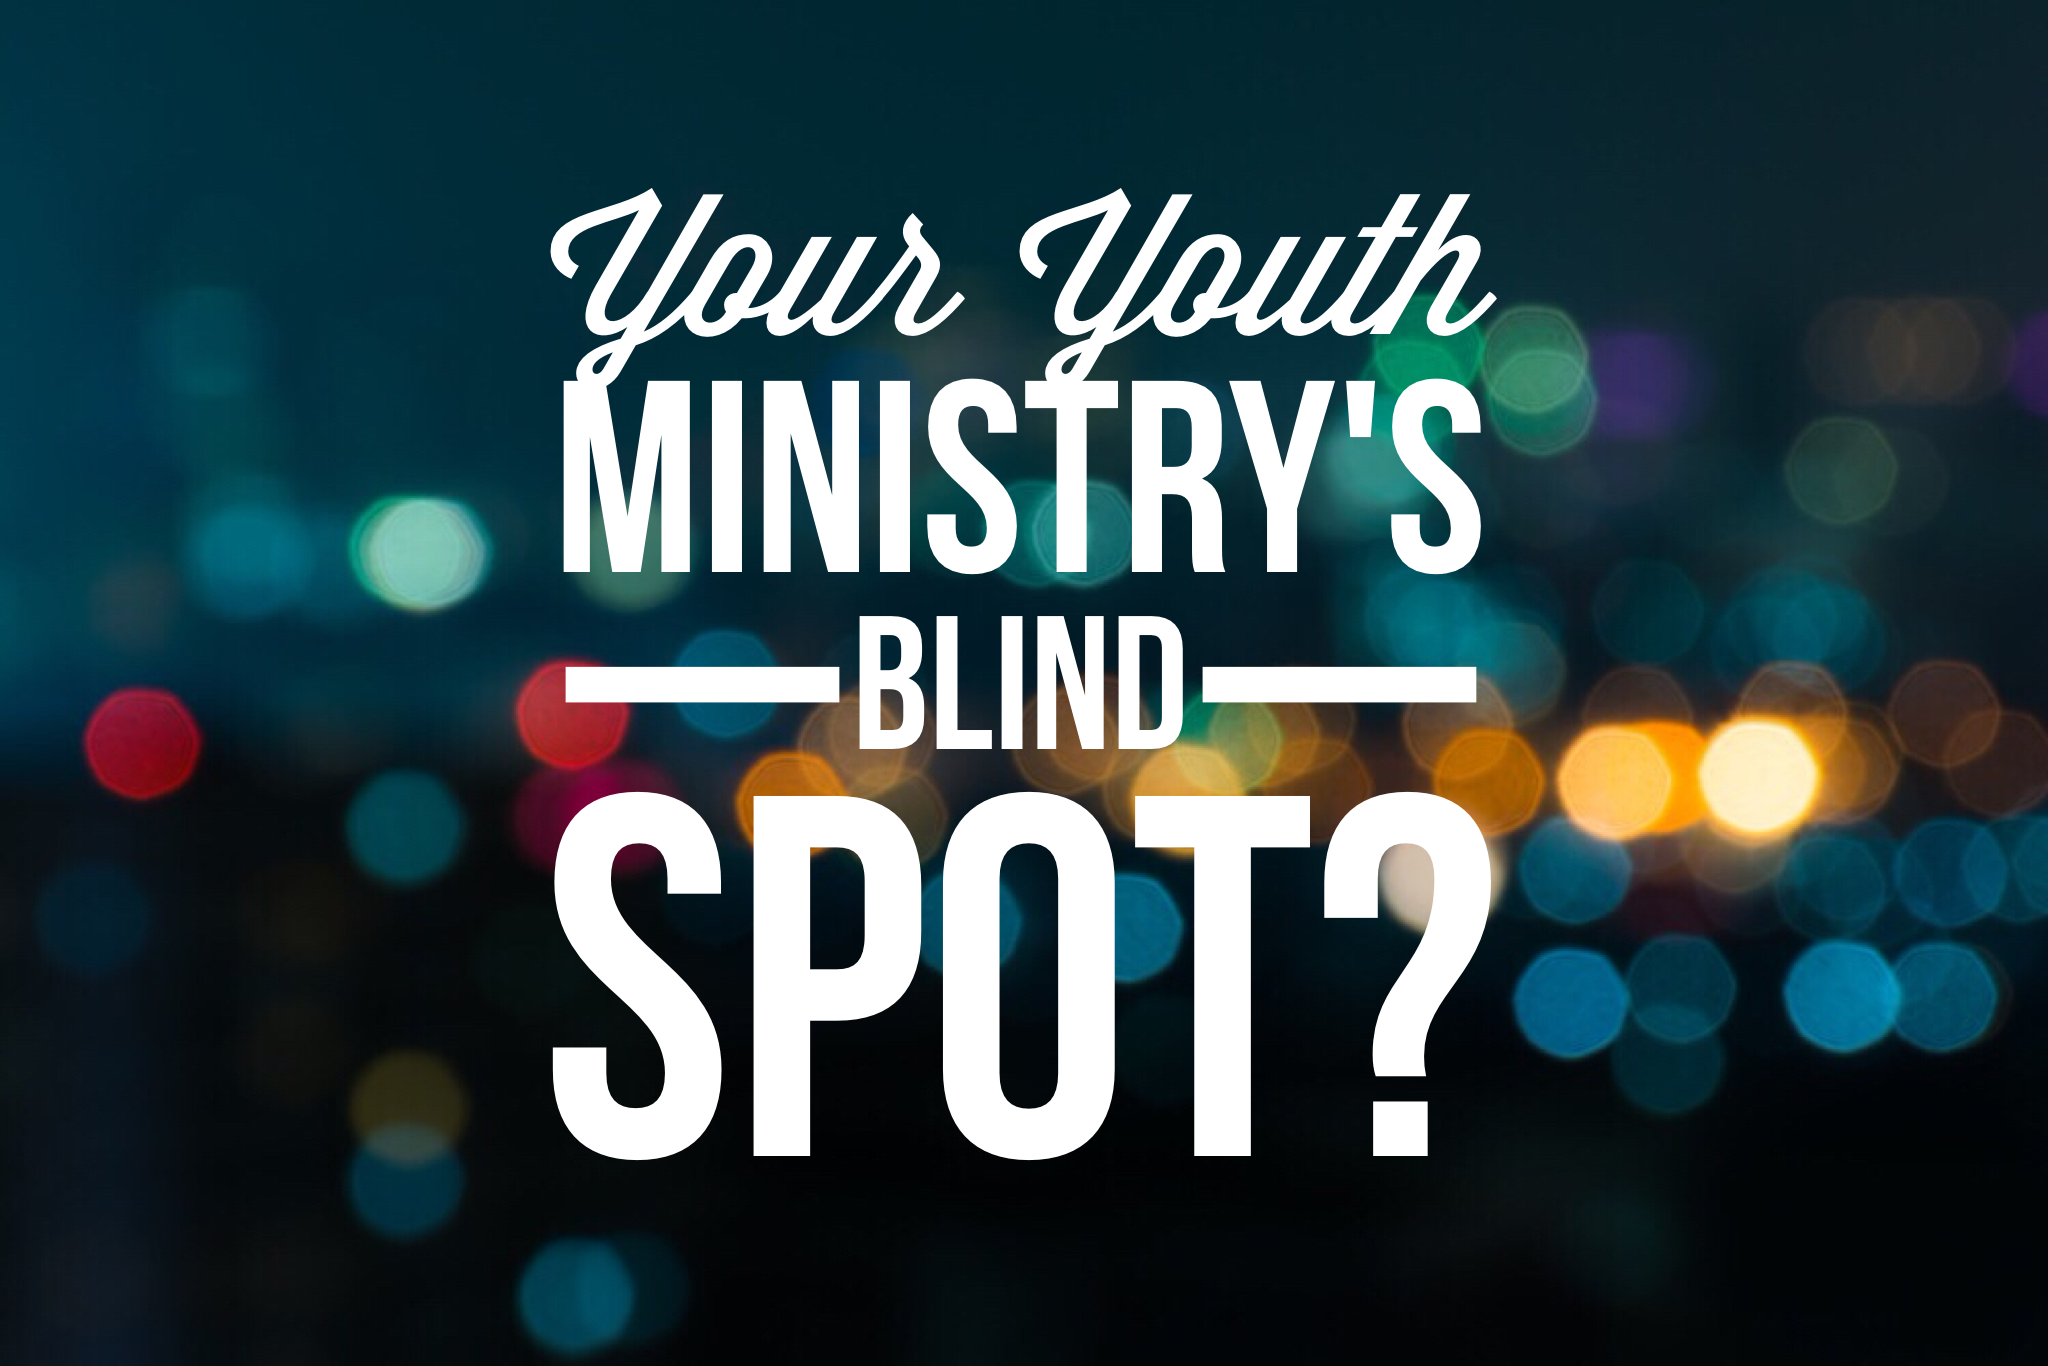 Does Your Youth Ministry Have This Huge Blind Spot?